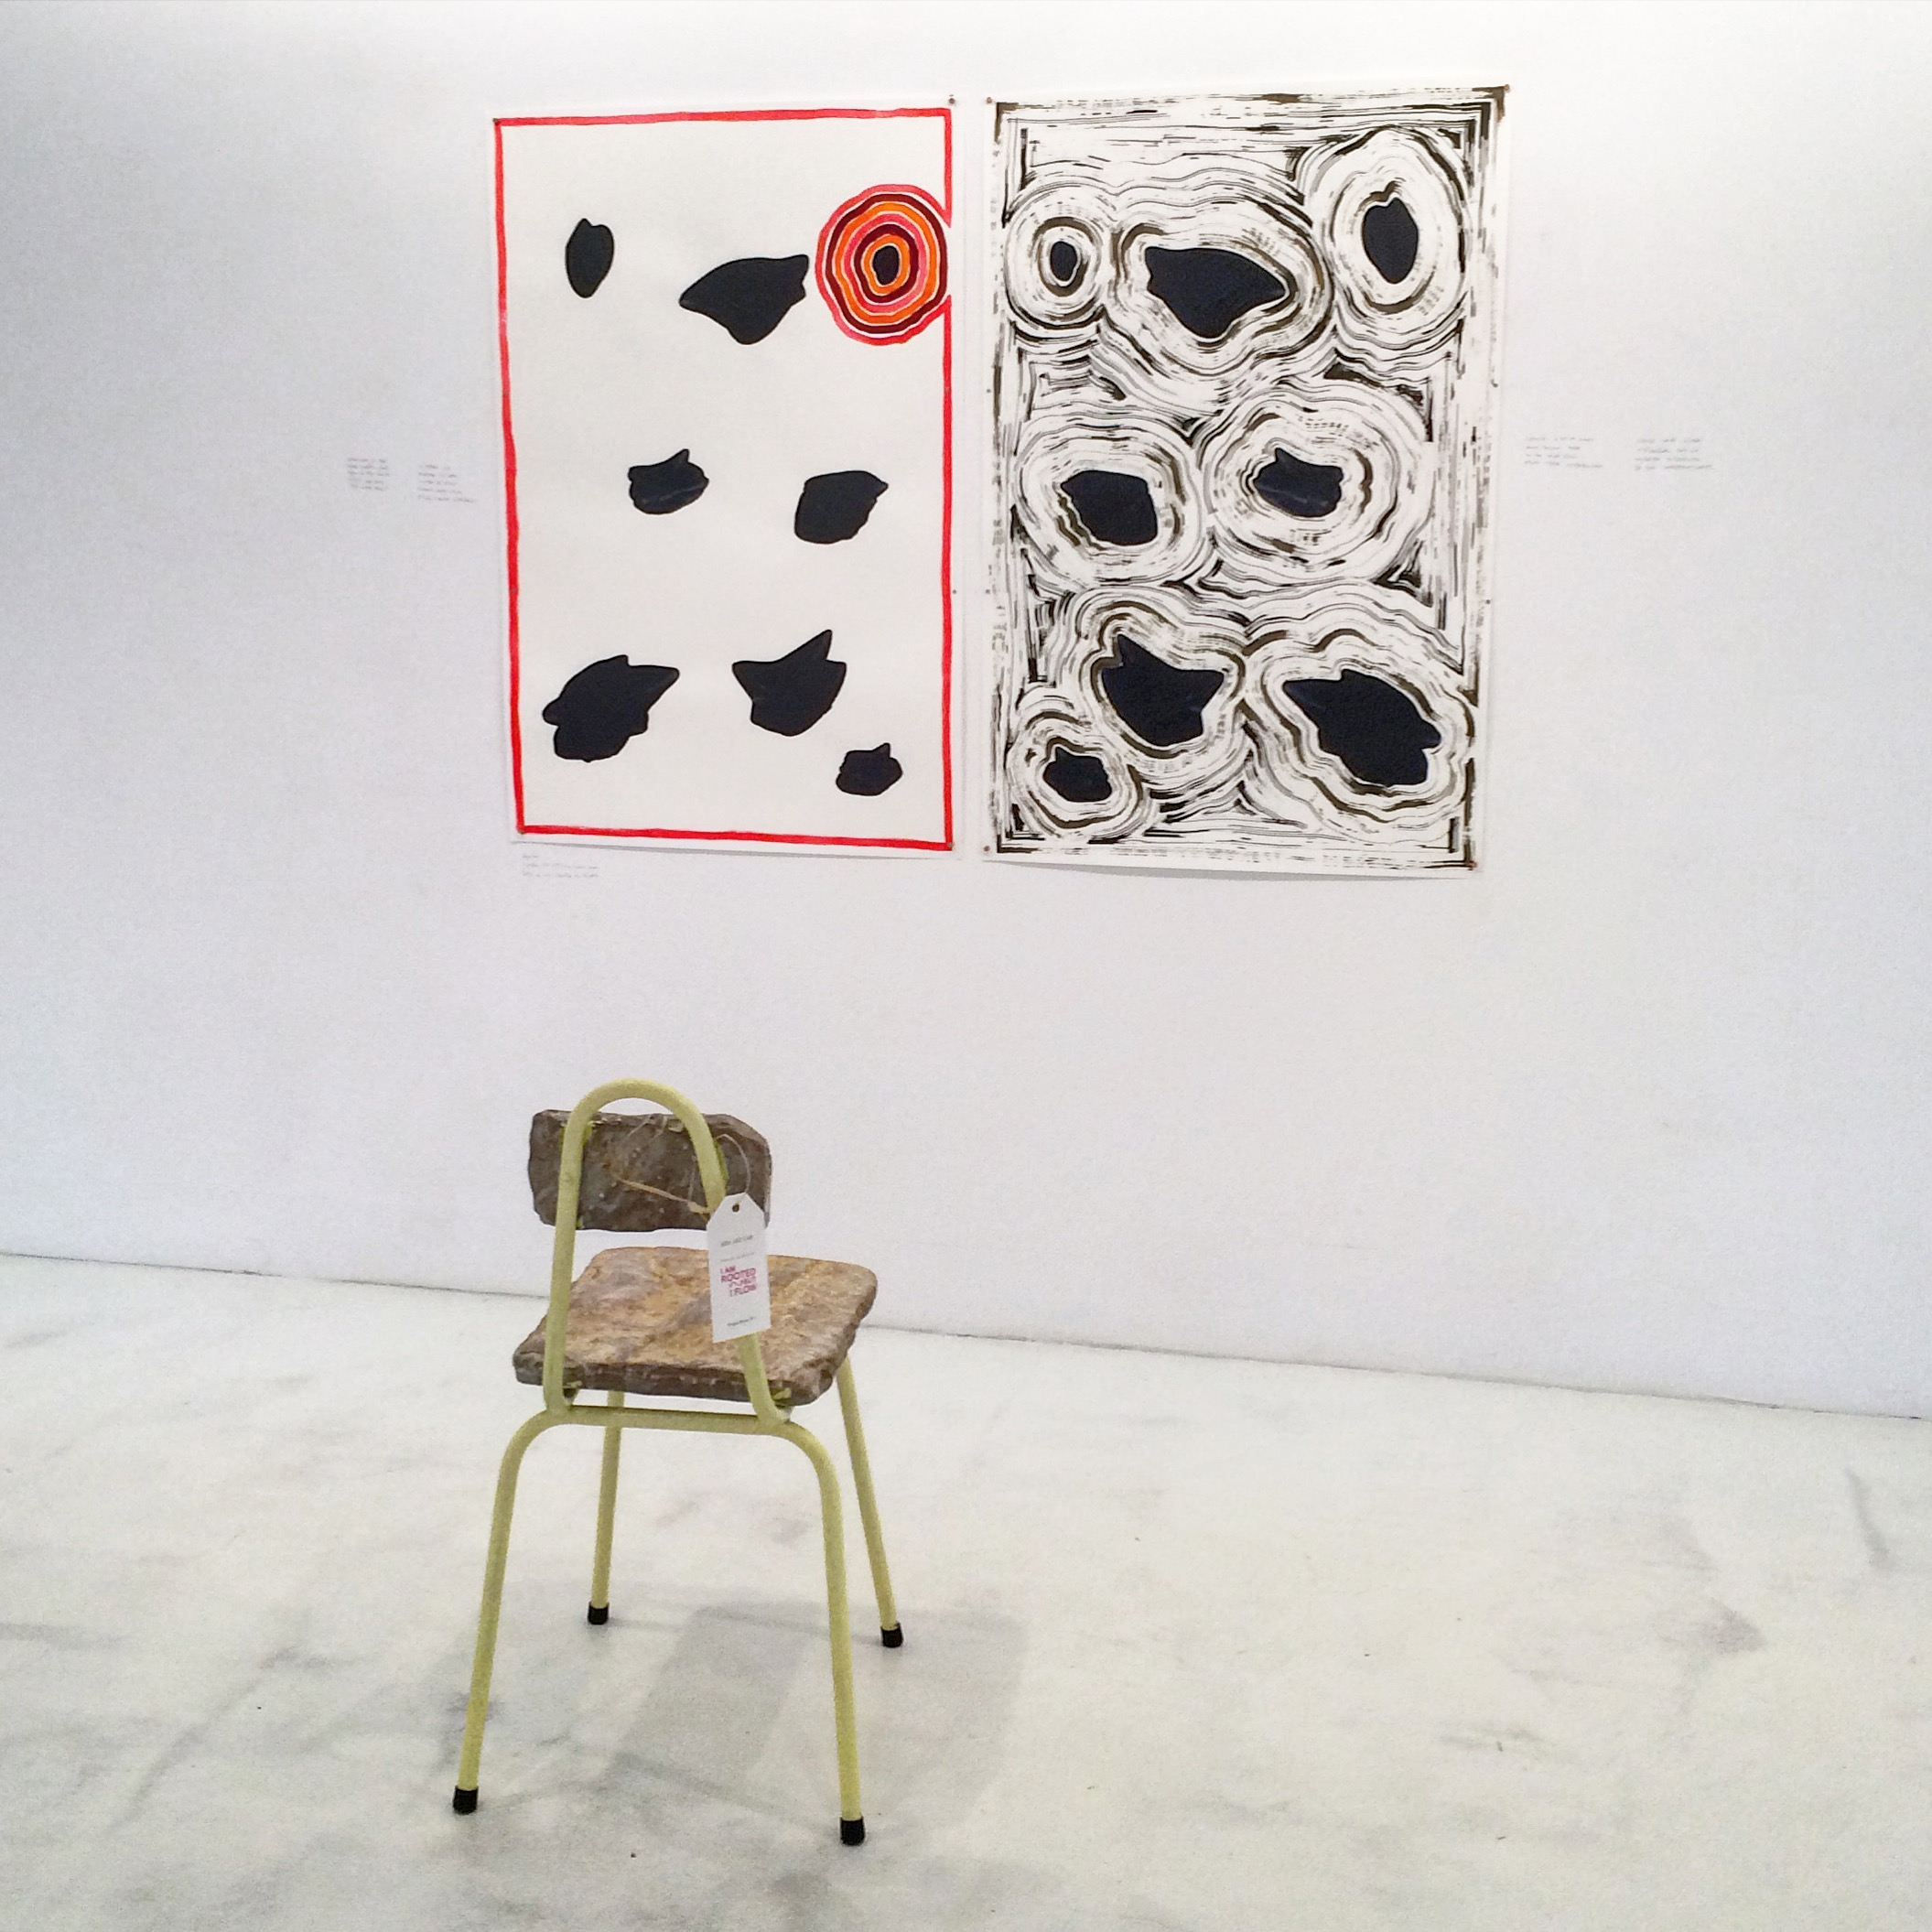 Agathes , 2015, Installations at ABA ART LAB in Mallorca, Acrylic and ink on paper, pencil on wall, essential oils and oil diffuser, chairs by Conalmadesign